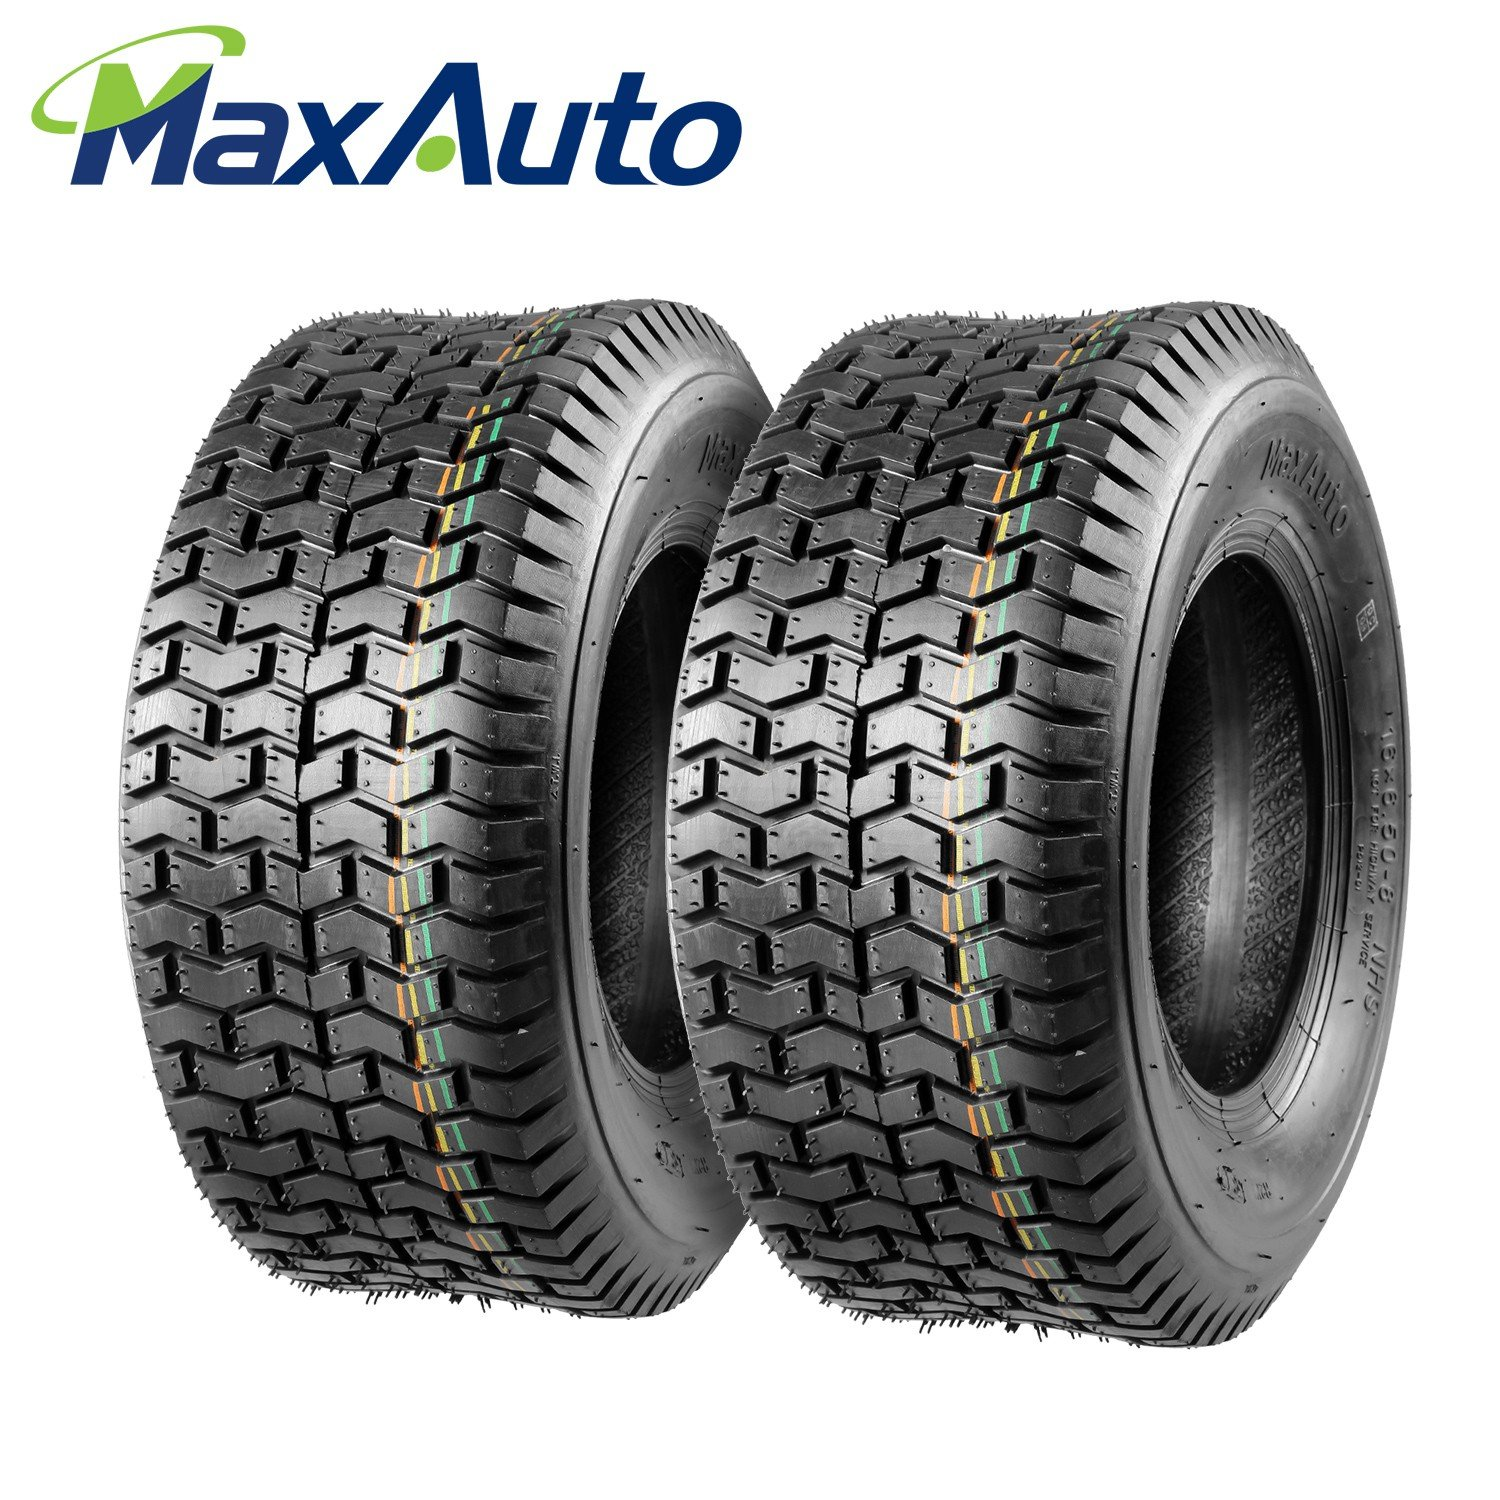 Set of 2 16x6.50-8 16/6.50-8 Turf Tires 4Ply Tubeless for Garden Tractor Lawn mower